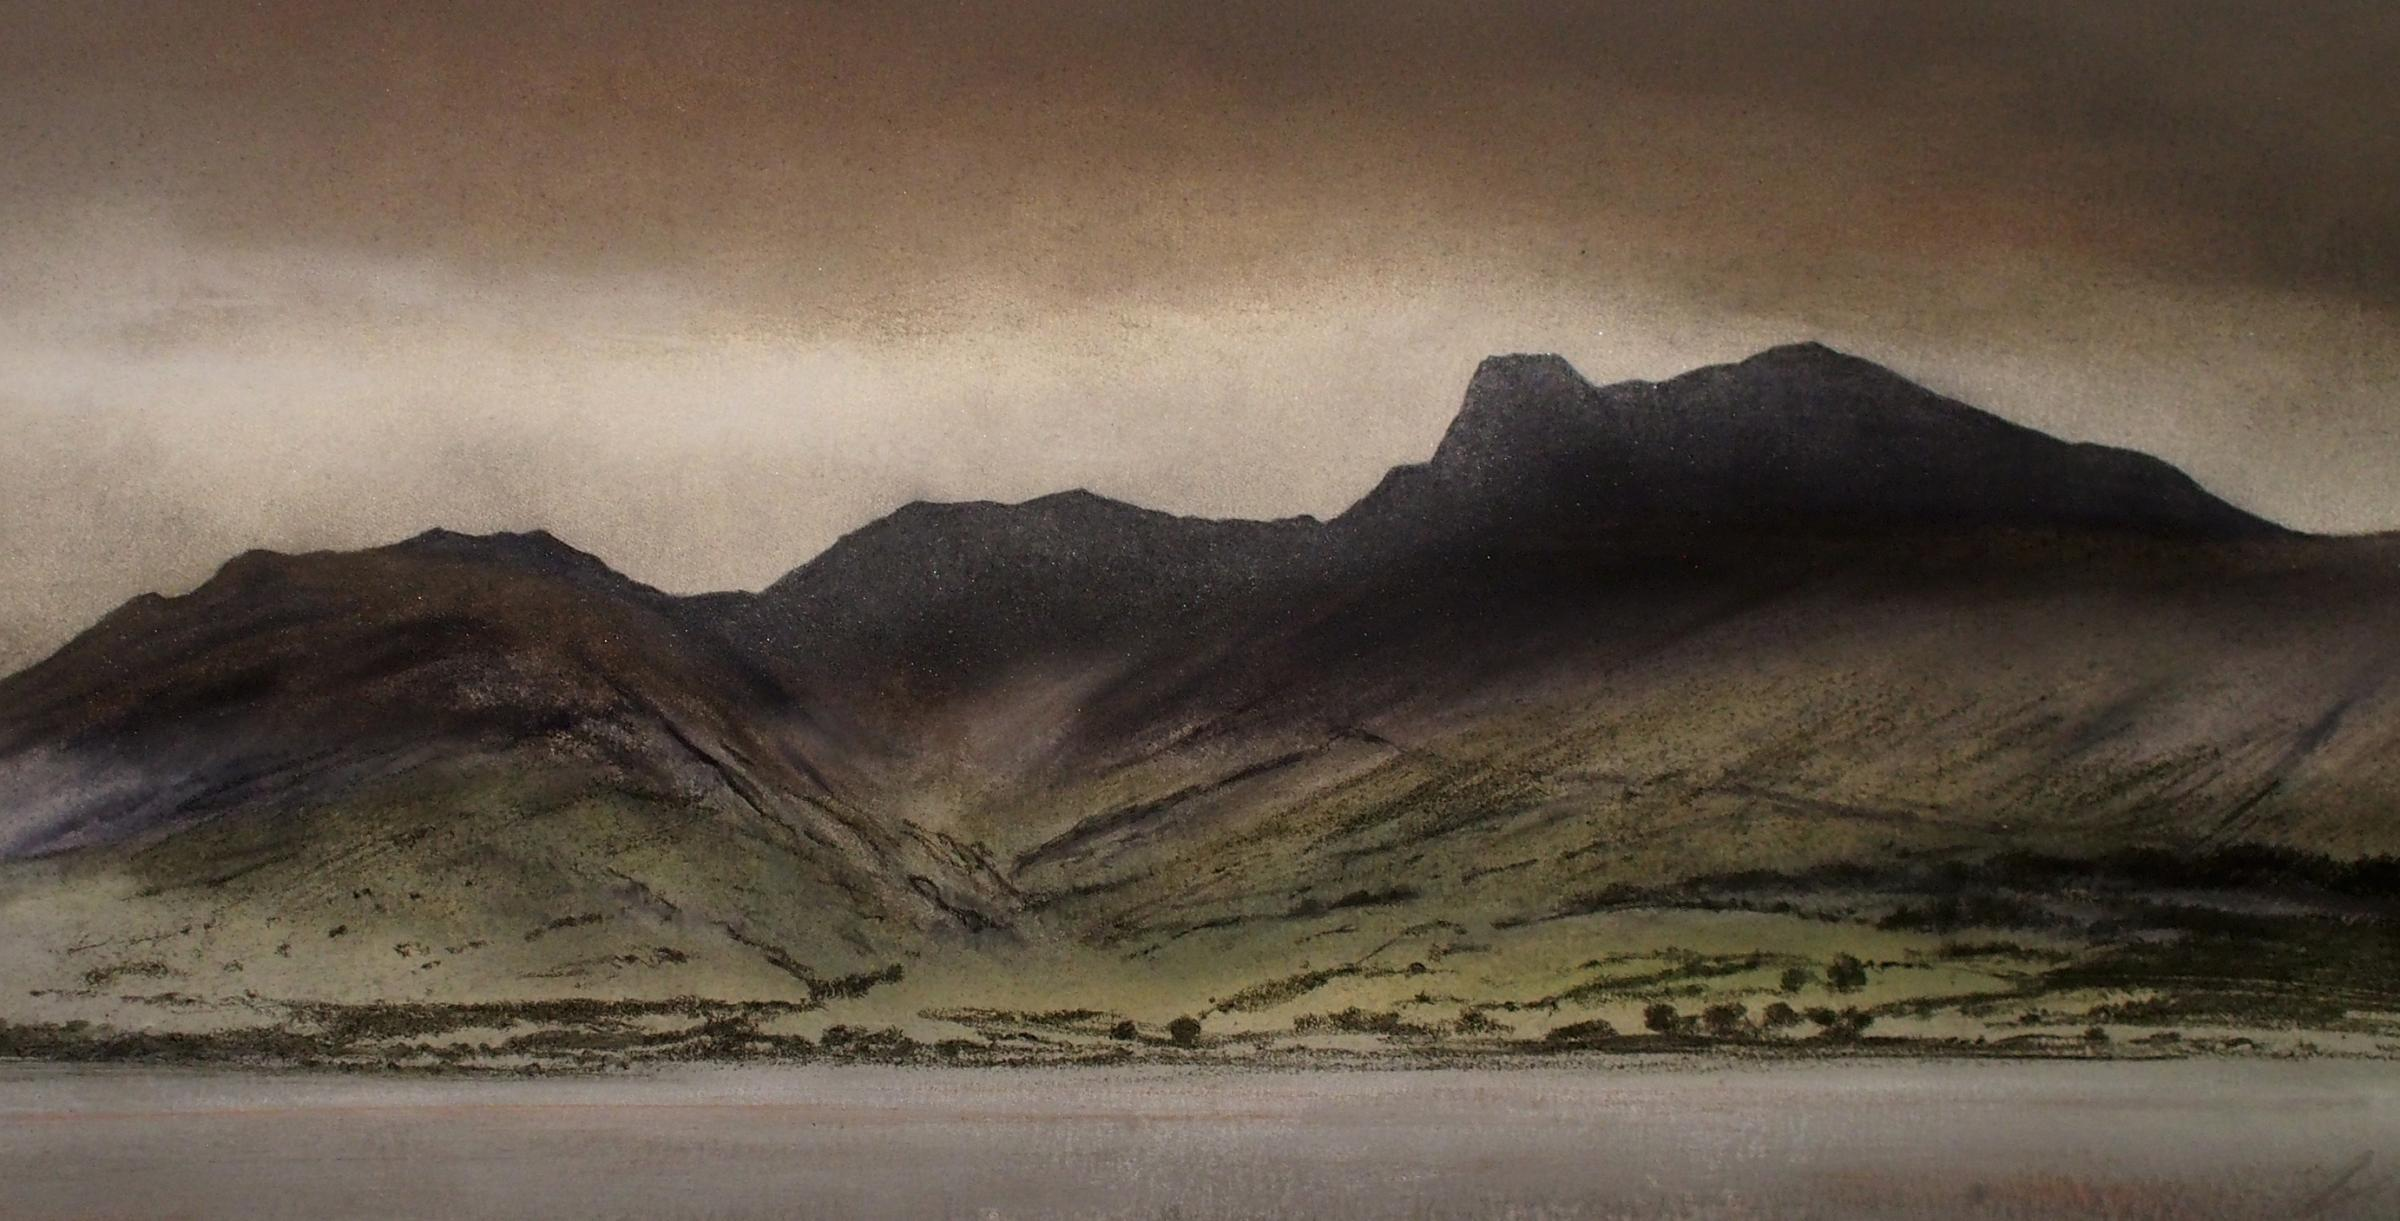 Glowing Silence - Scafell Pike by Daniel Cooper